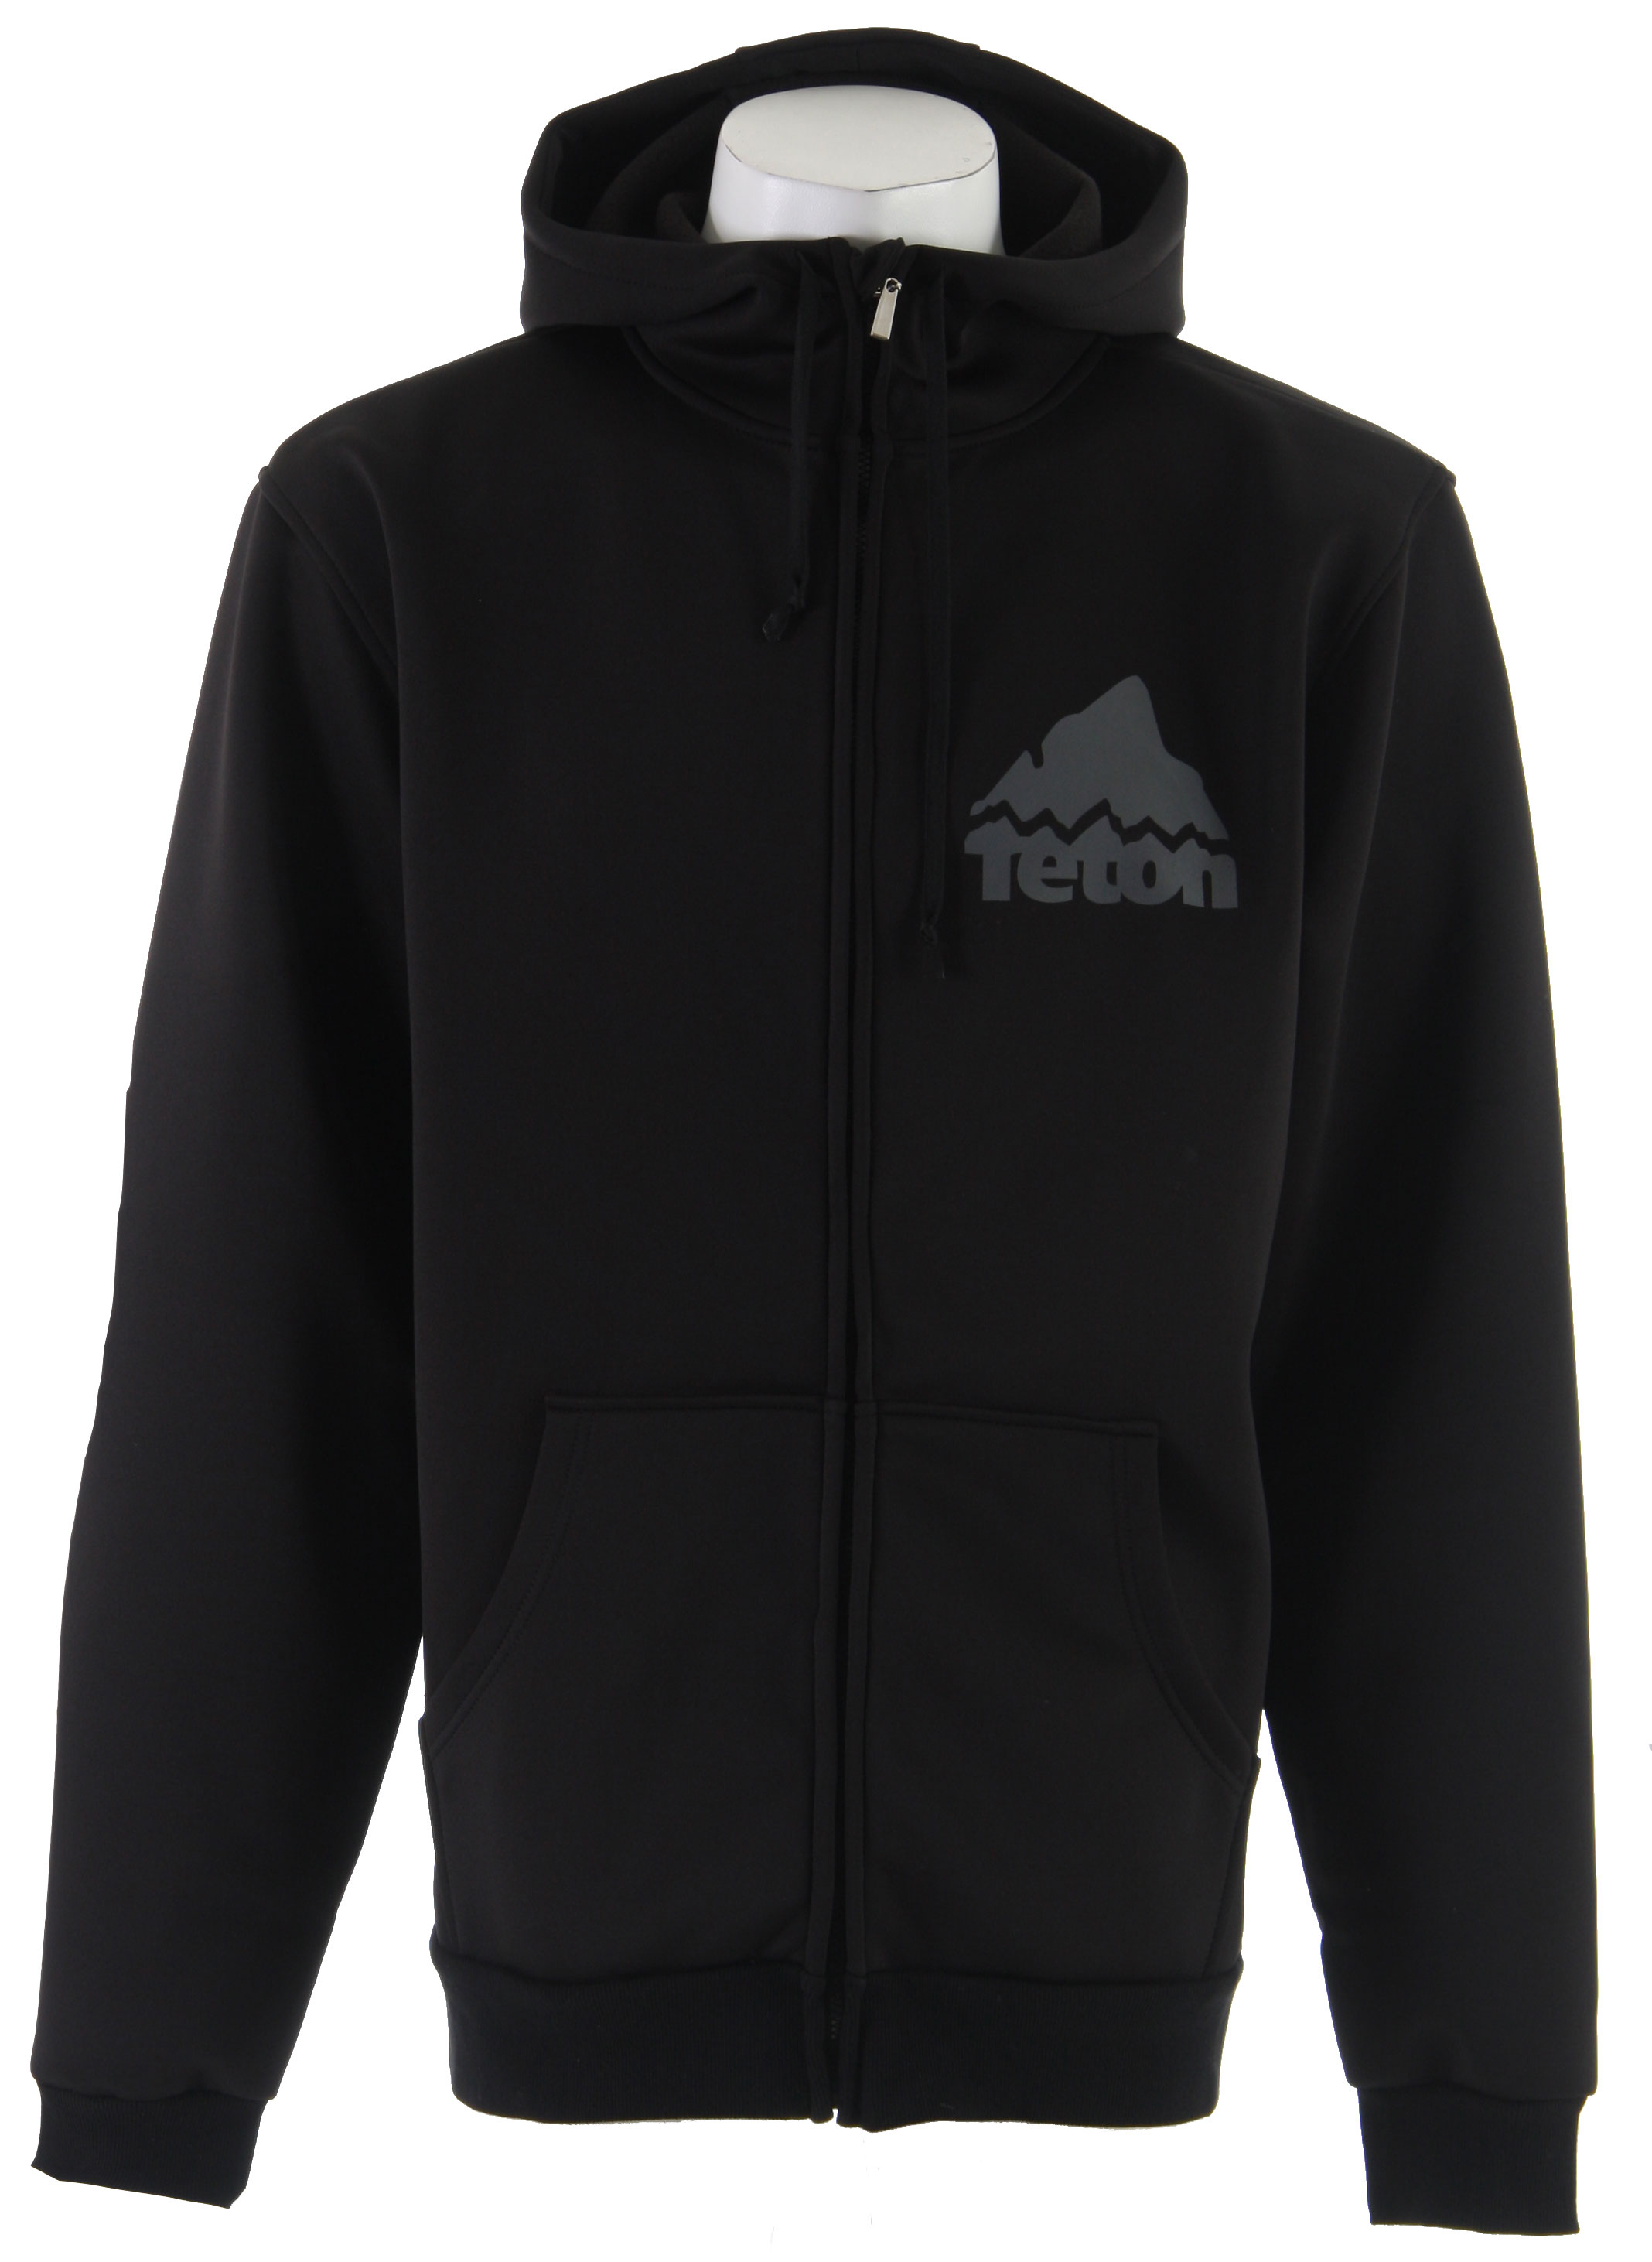 "Ski Everyone knows snagging fresh tracks in bounds sometimes means battling through painful weather. Long after the posers have retreated to the bar, this full-zip hoody will keep you warm and comfortable, so you can tear the goods up.Key Features of the Teton Team Bonded Hoodie Black: Constructed of bonded hard faced fleece Kangaroo Pocket Hidden iPod Pocket with Zip Closure ""Go To"" Foul Weather Layer - $44.95"